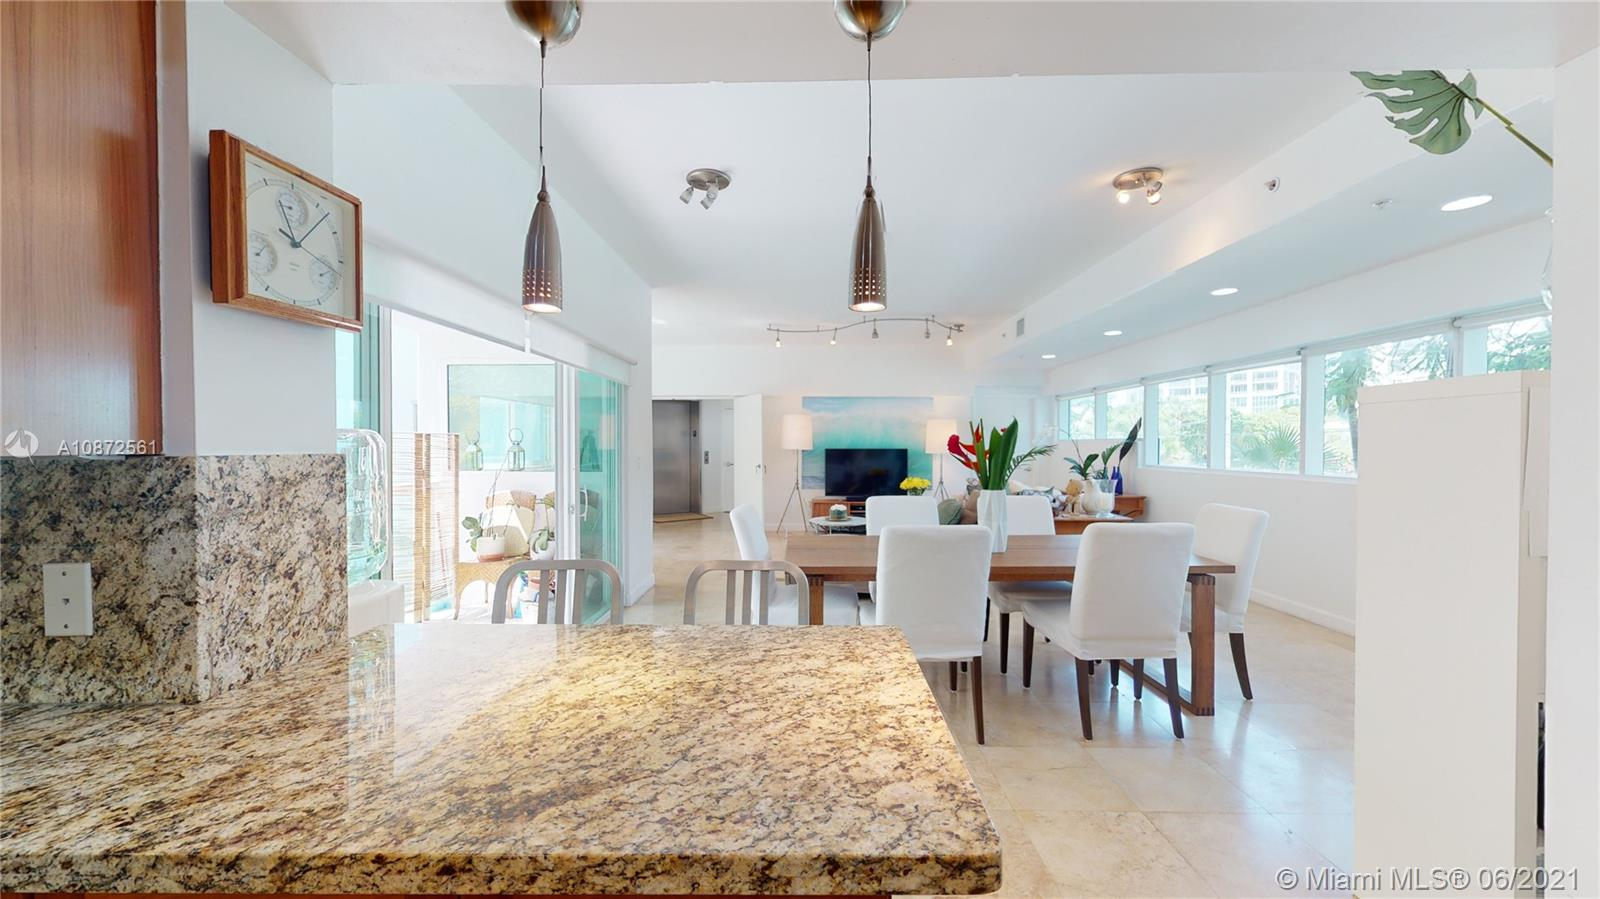 Welcome Home to a Boutique Condo with an elevator shared with only 7 other units that allows 3 pets (BIG DOGS INCLUDED) in the heart of Coconut Grove!  Only 20 units in entire building!  Marble floors, Granite Counter tops throughout, Stainless Steel Appliances, Steam Shower, Whirlpool Tub, Large Master Bedroom, All Walk-In Closets. Just 3 blocks from CocoWalk and 1 block from Fresh Market!  Grill out on the Roof with Gorgeous Views, a Perfect place to watch the fireworks on July 4th!  Key-Fob Elevator opens directly into foyer of unit!  Very secure!!  Impact windows/Doors.   Party room, Gym, Pool, and Secure, Gated Parking!  Also makes for a Great Investment Opportunity-currently rented and tenant is interested in renewing although renter can move out as well, if so desired.